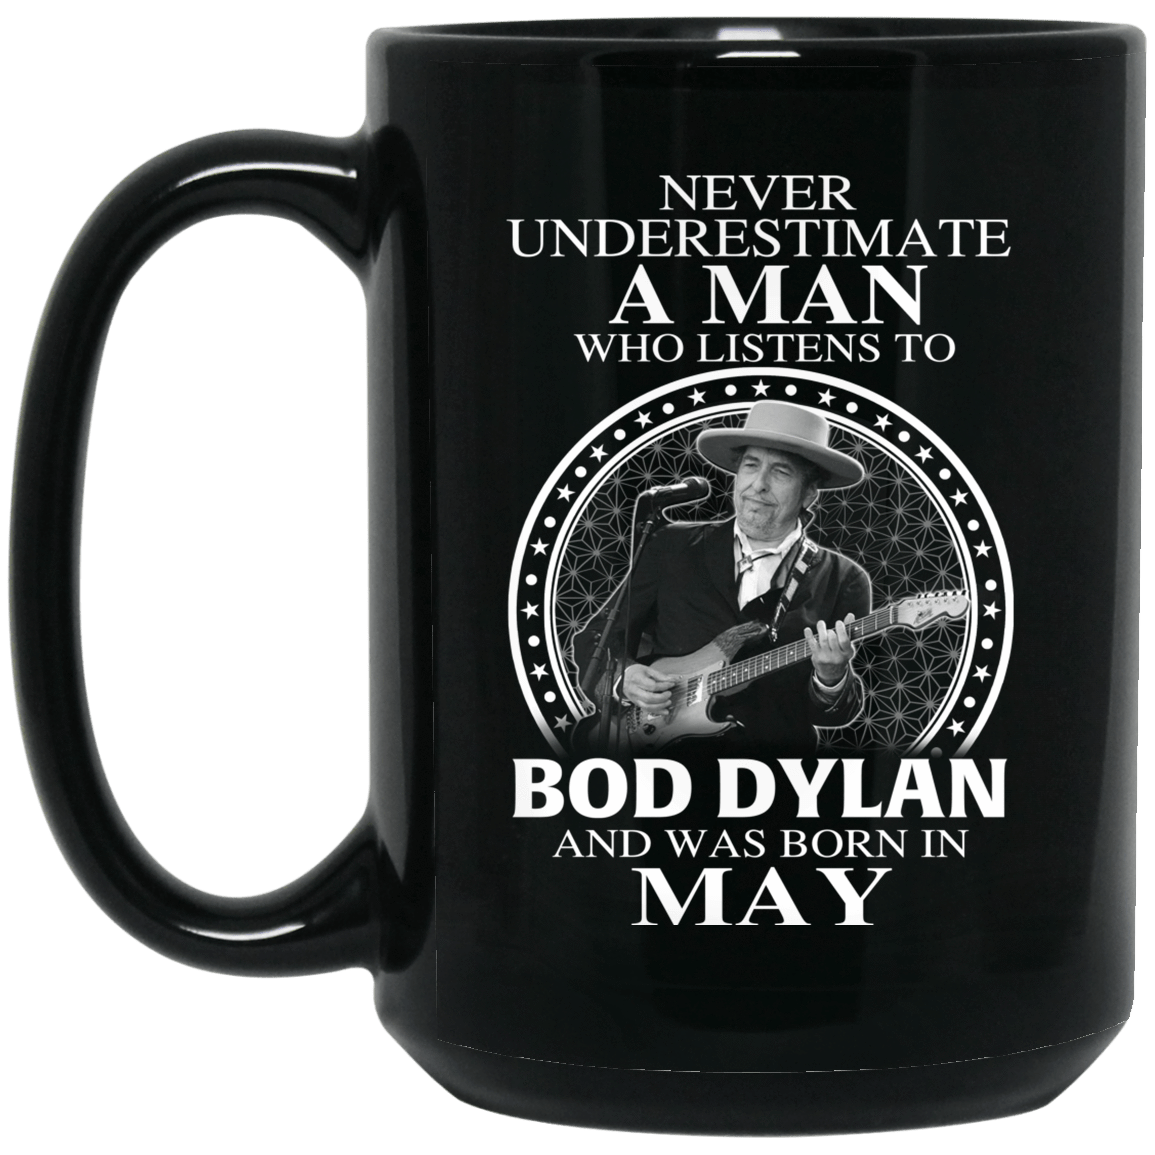 A Man Who Listens To Bob Dylan And Was Born In May Mug 1066-10182-76154690-49311 - Tee Ript